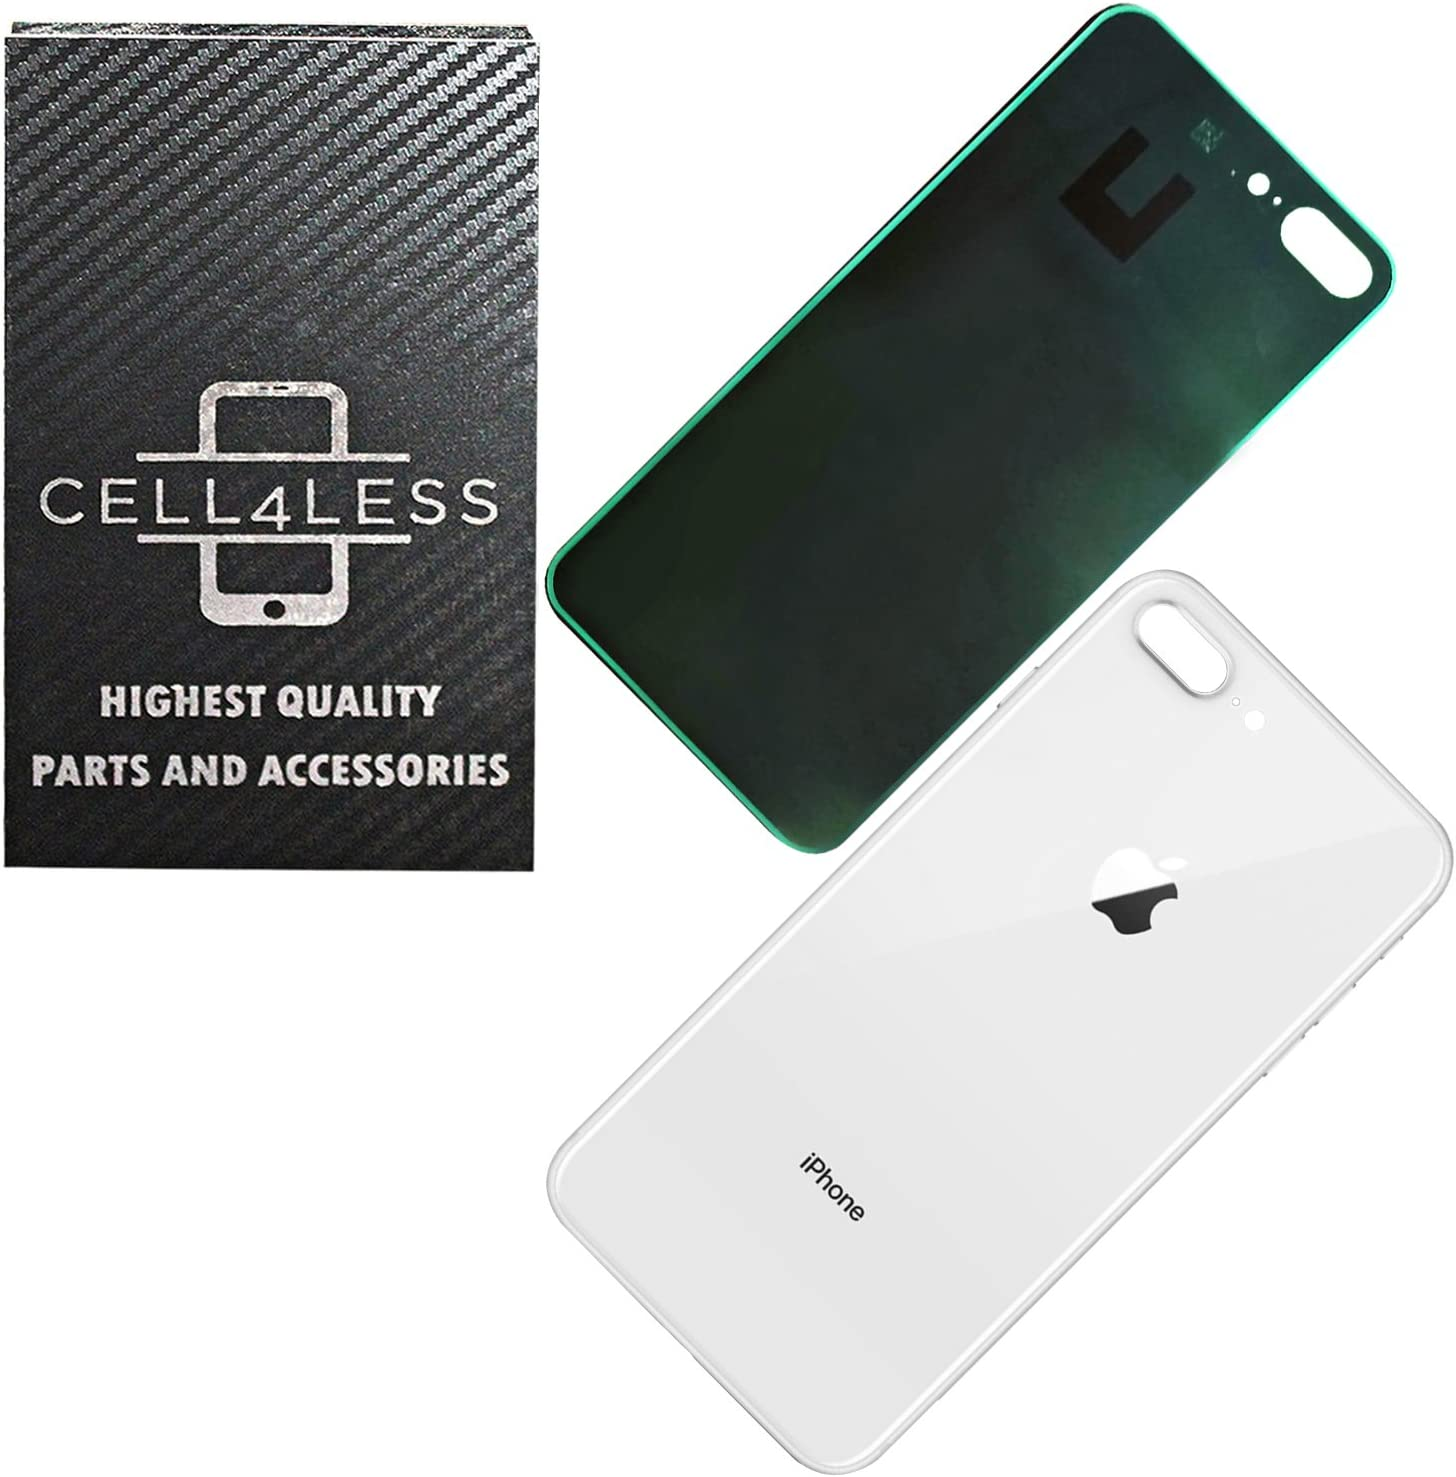 Space Gray CELL4LESS Compatible Replacement for The iPhone X Back Glass Cover OEM Quality Battery Door Replacement w//Adhesive /& Removal Tool